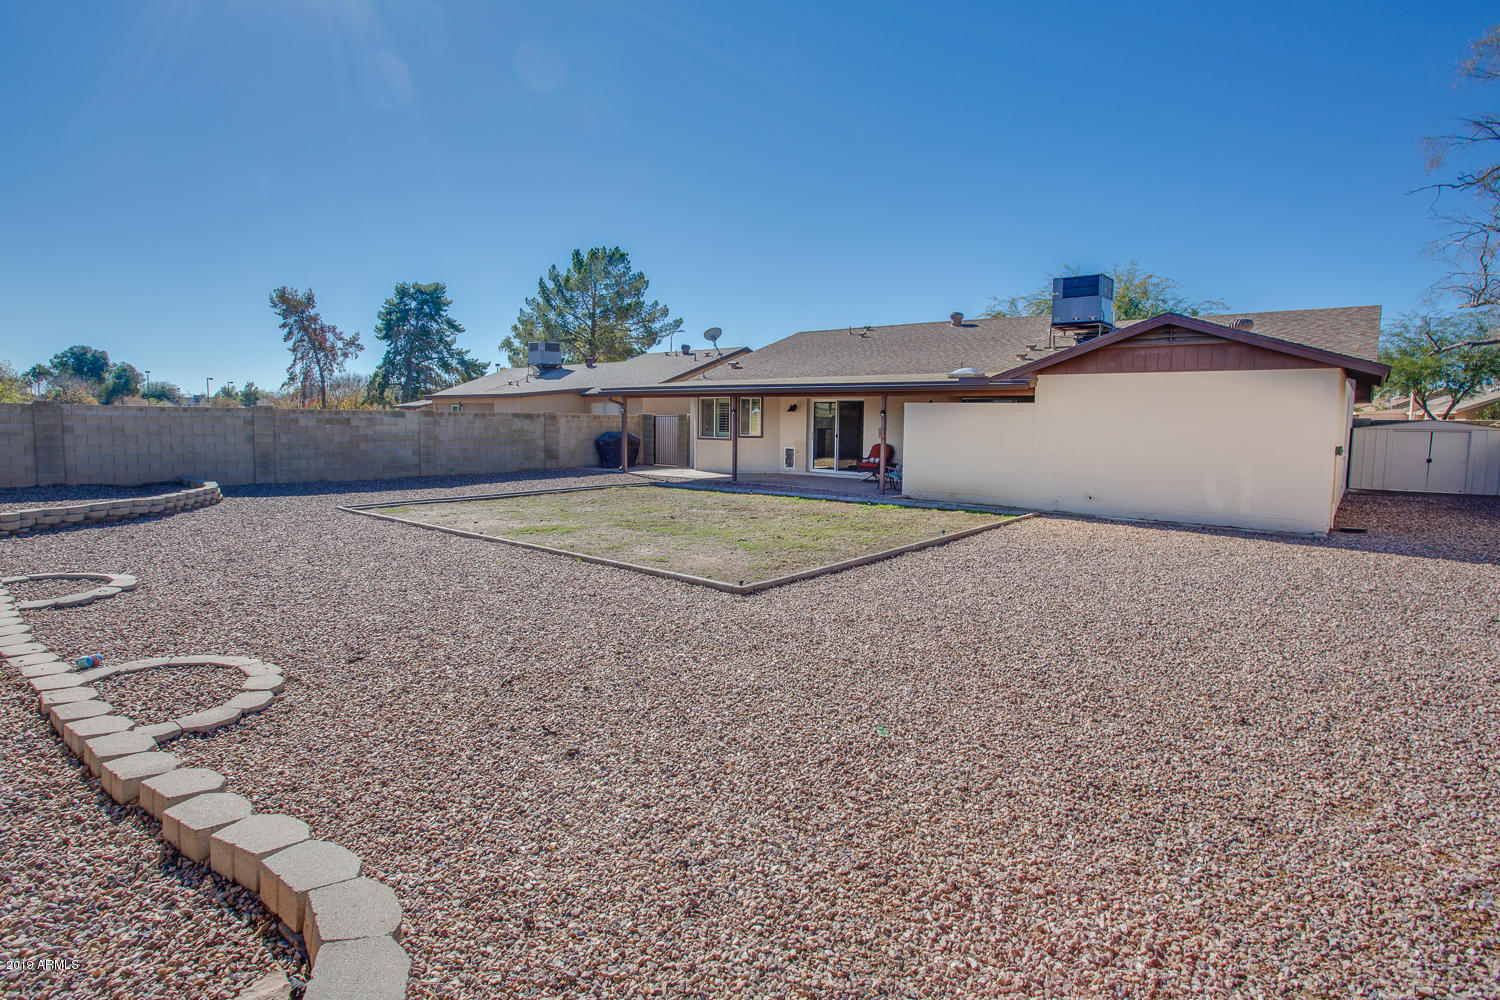 MLS 5865283 205 S COTTONWOOD Street, Chandler, AZ 85225 Chandler AZ Colonia Coronita